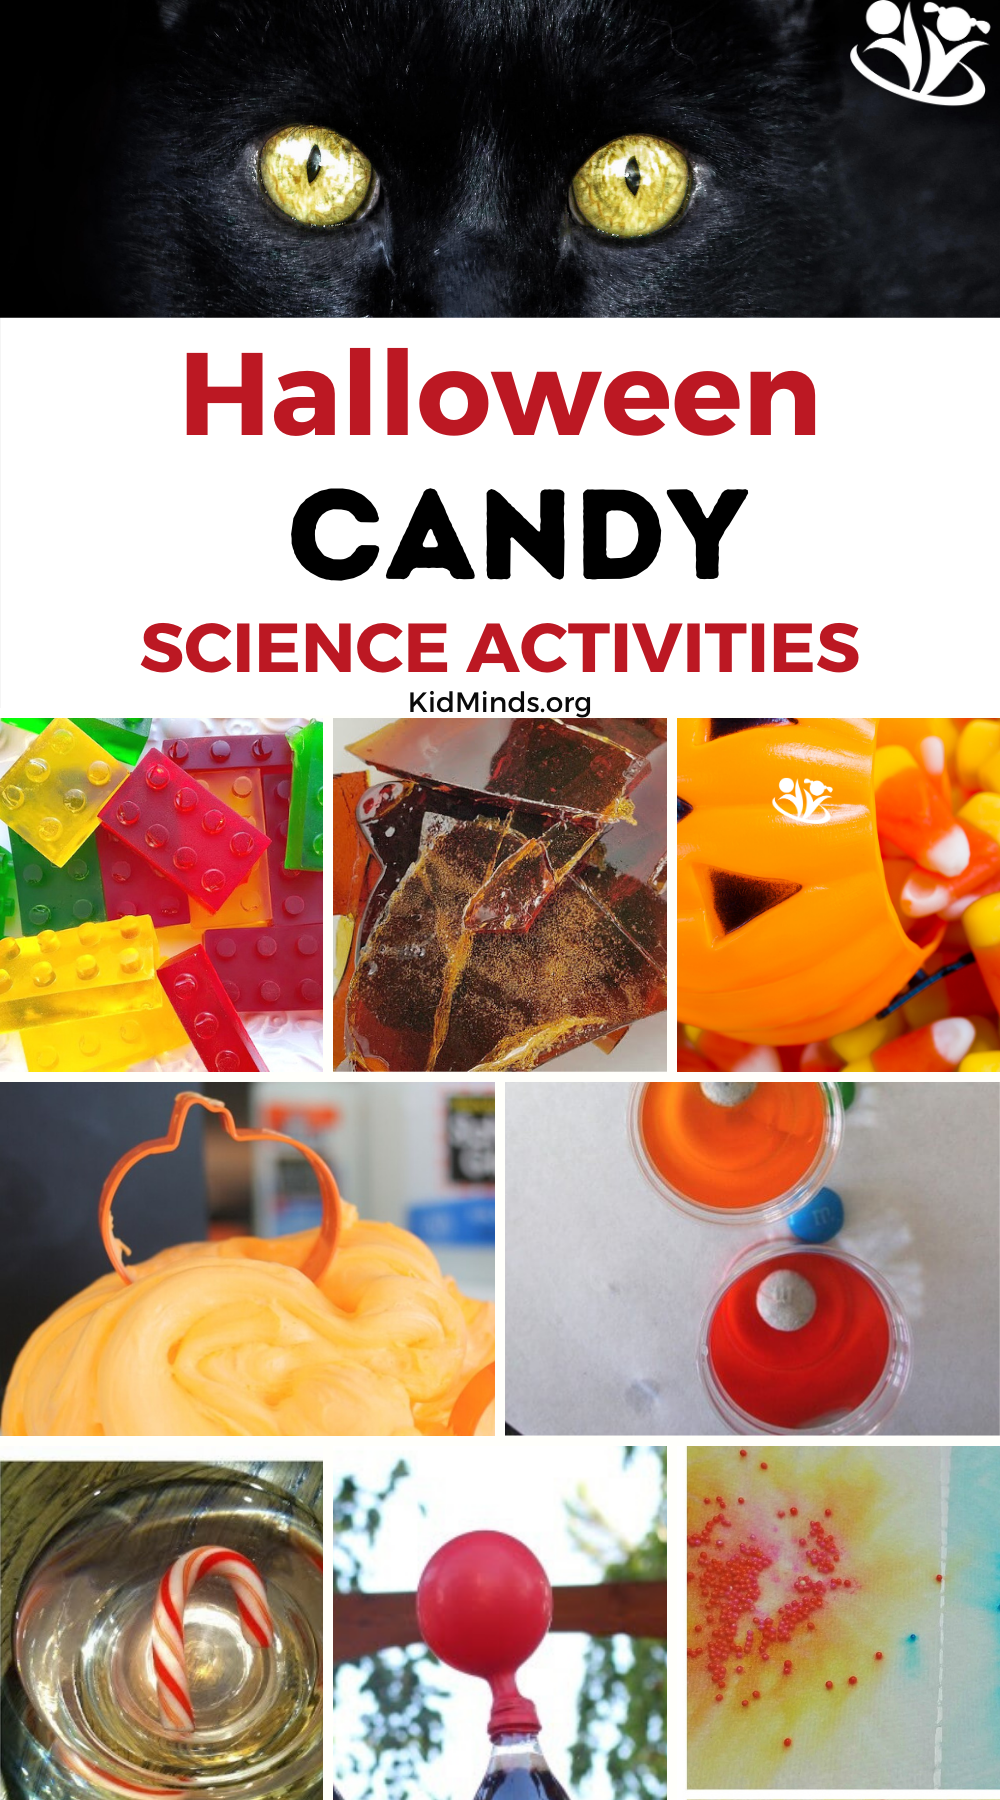 We took a closer look at historical Halloween traditions and discovered an abundance of opportunities for hands-on investigation. Halloween Science topics range from fire activities to candy experiments. #kidsactivities #Halloween #handsonactivities #STEAM #science #scienceforlittlekids